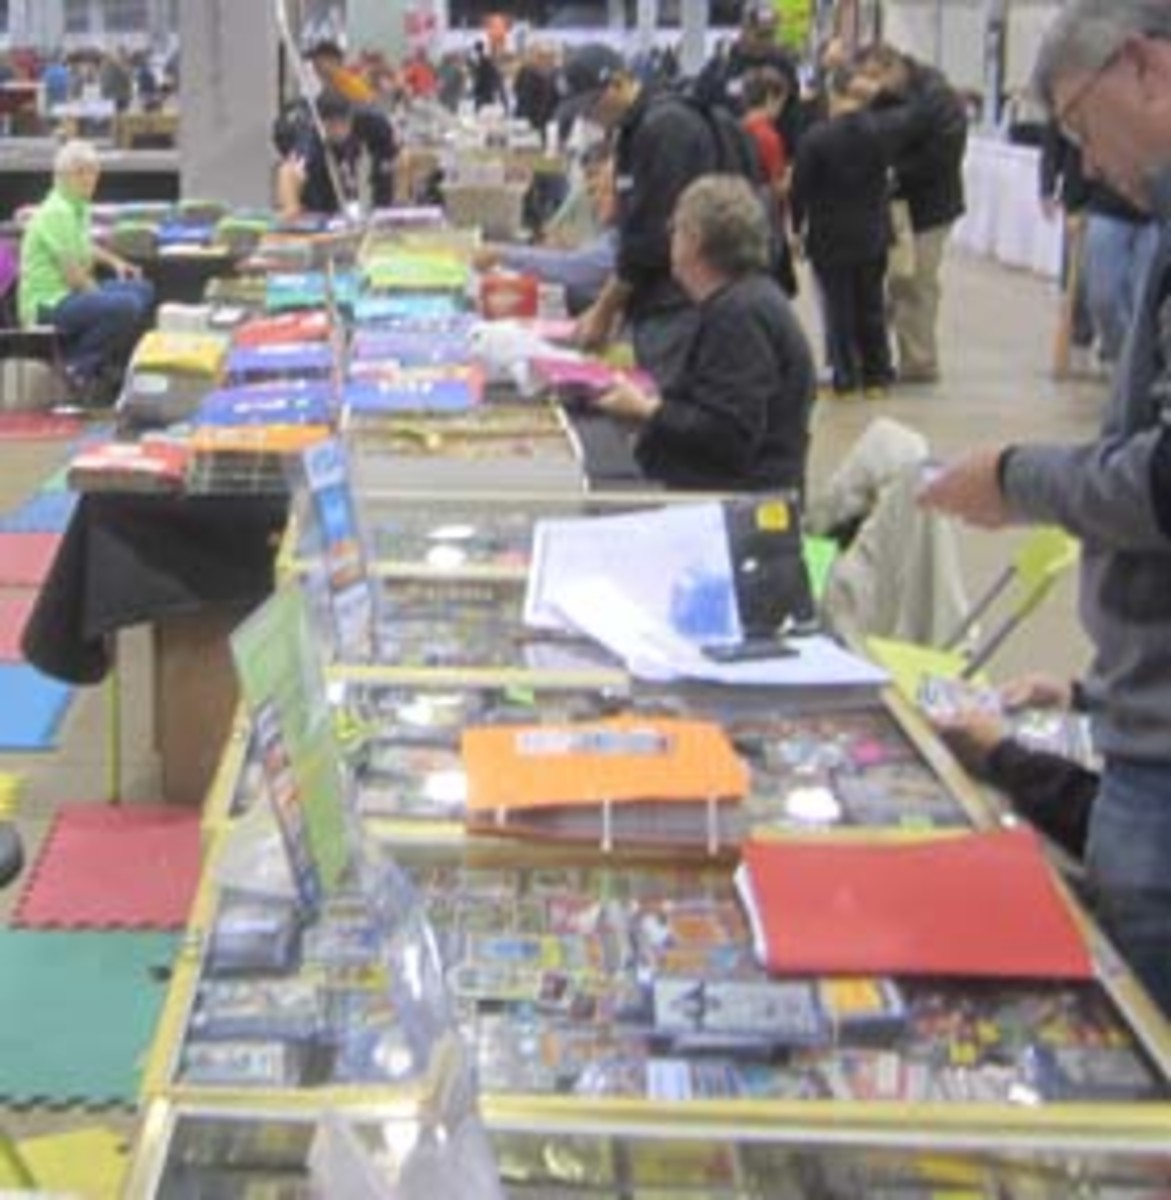 vrecheckDisplay cases, bargain boxes, and binders with priced cards in various grades are all part of what dealers bring to shows.